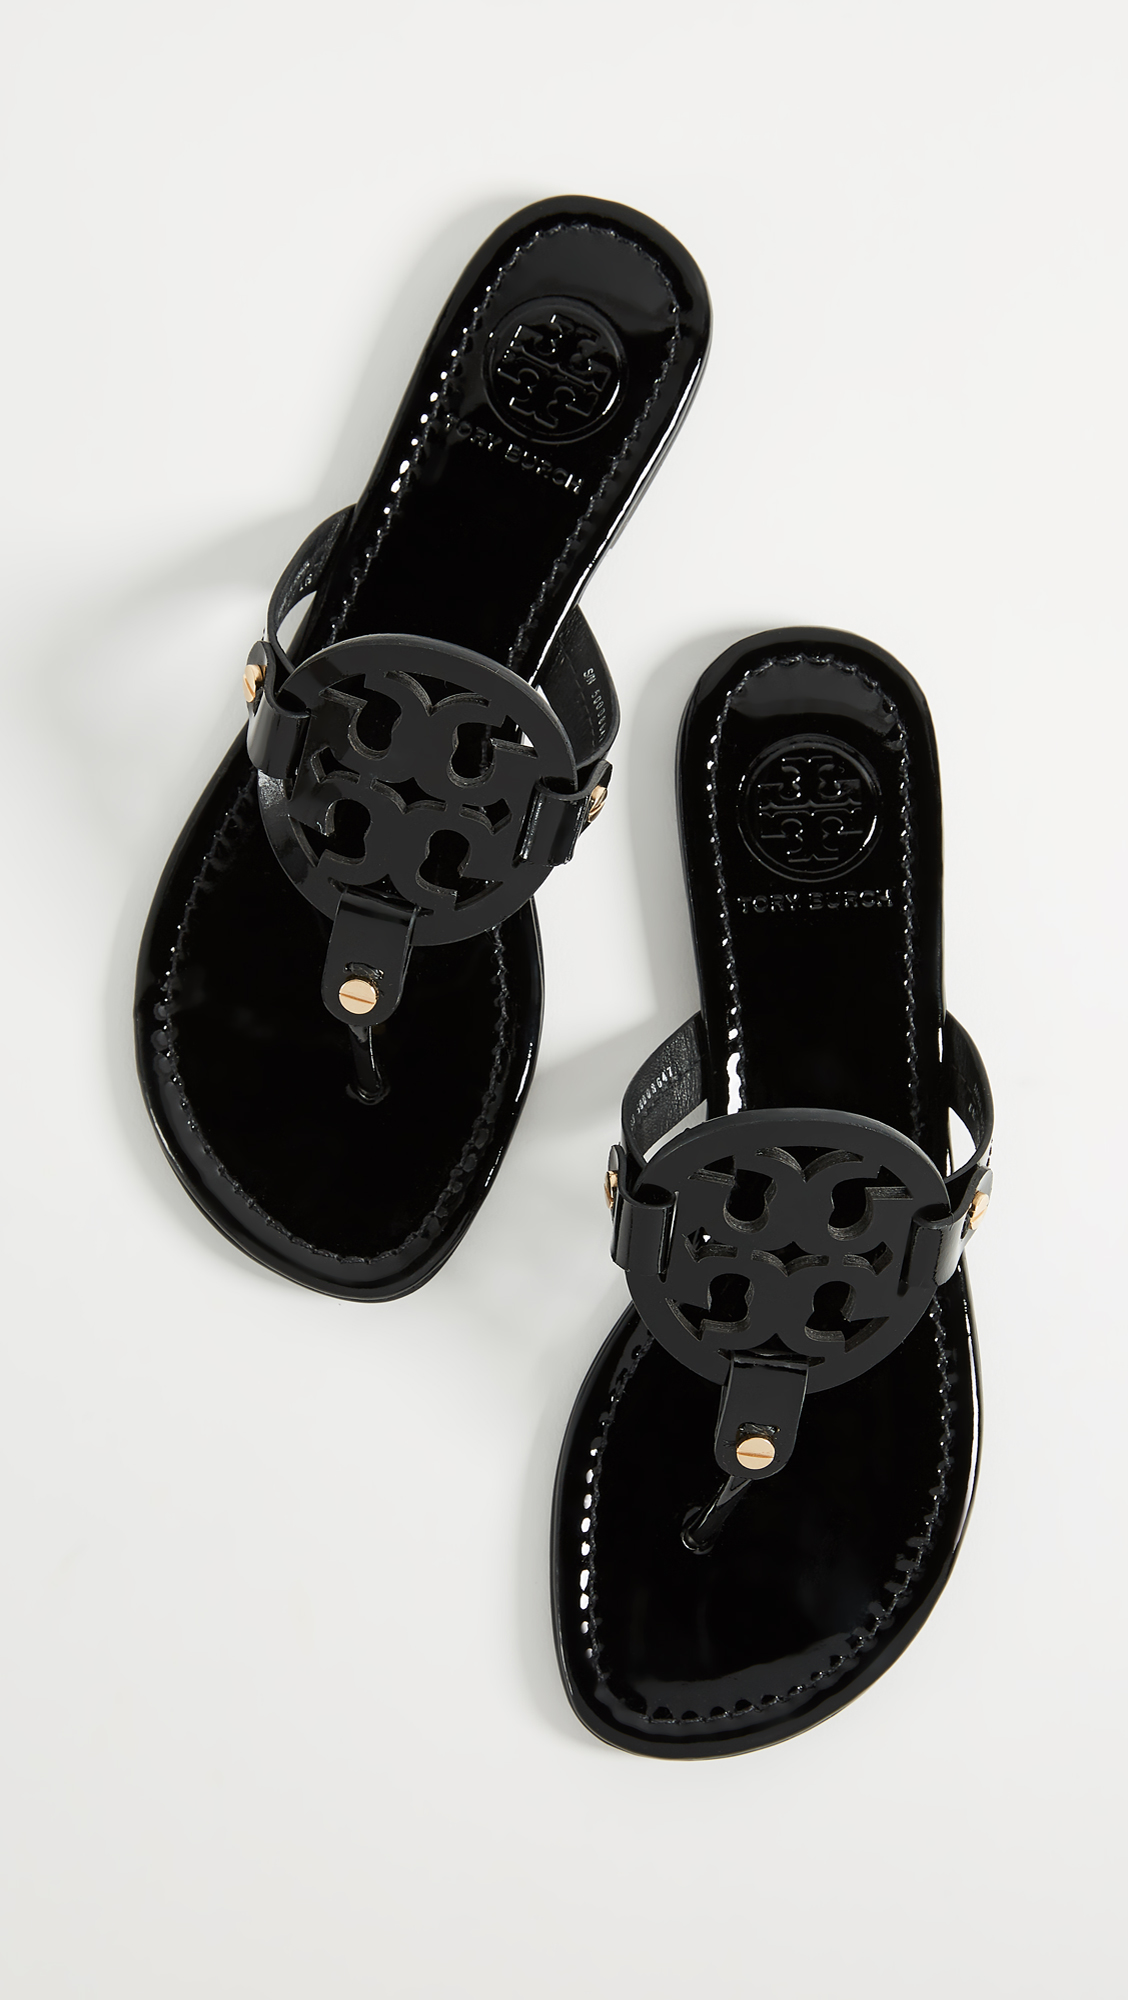 069b06a5b Tory Burch Miller Thong Sandals